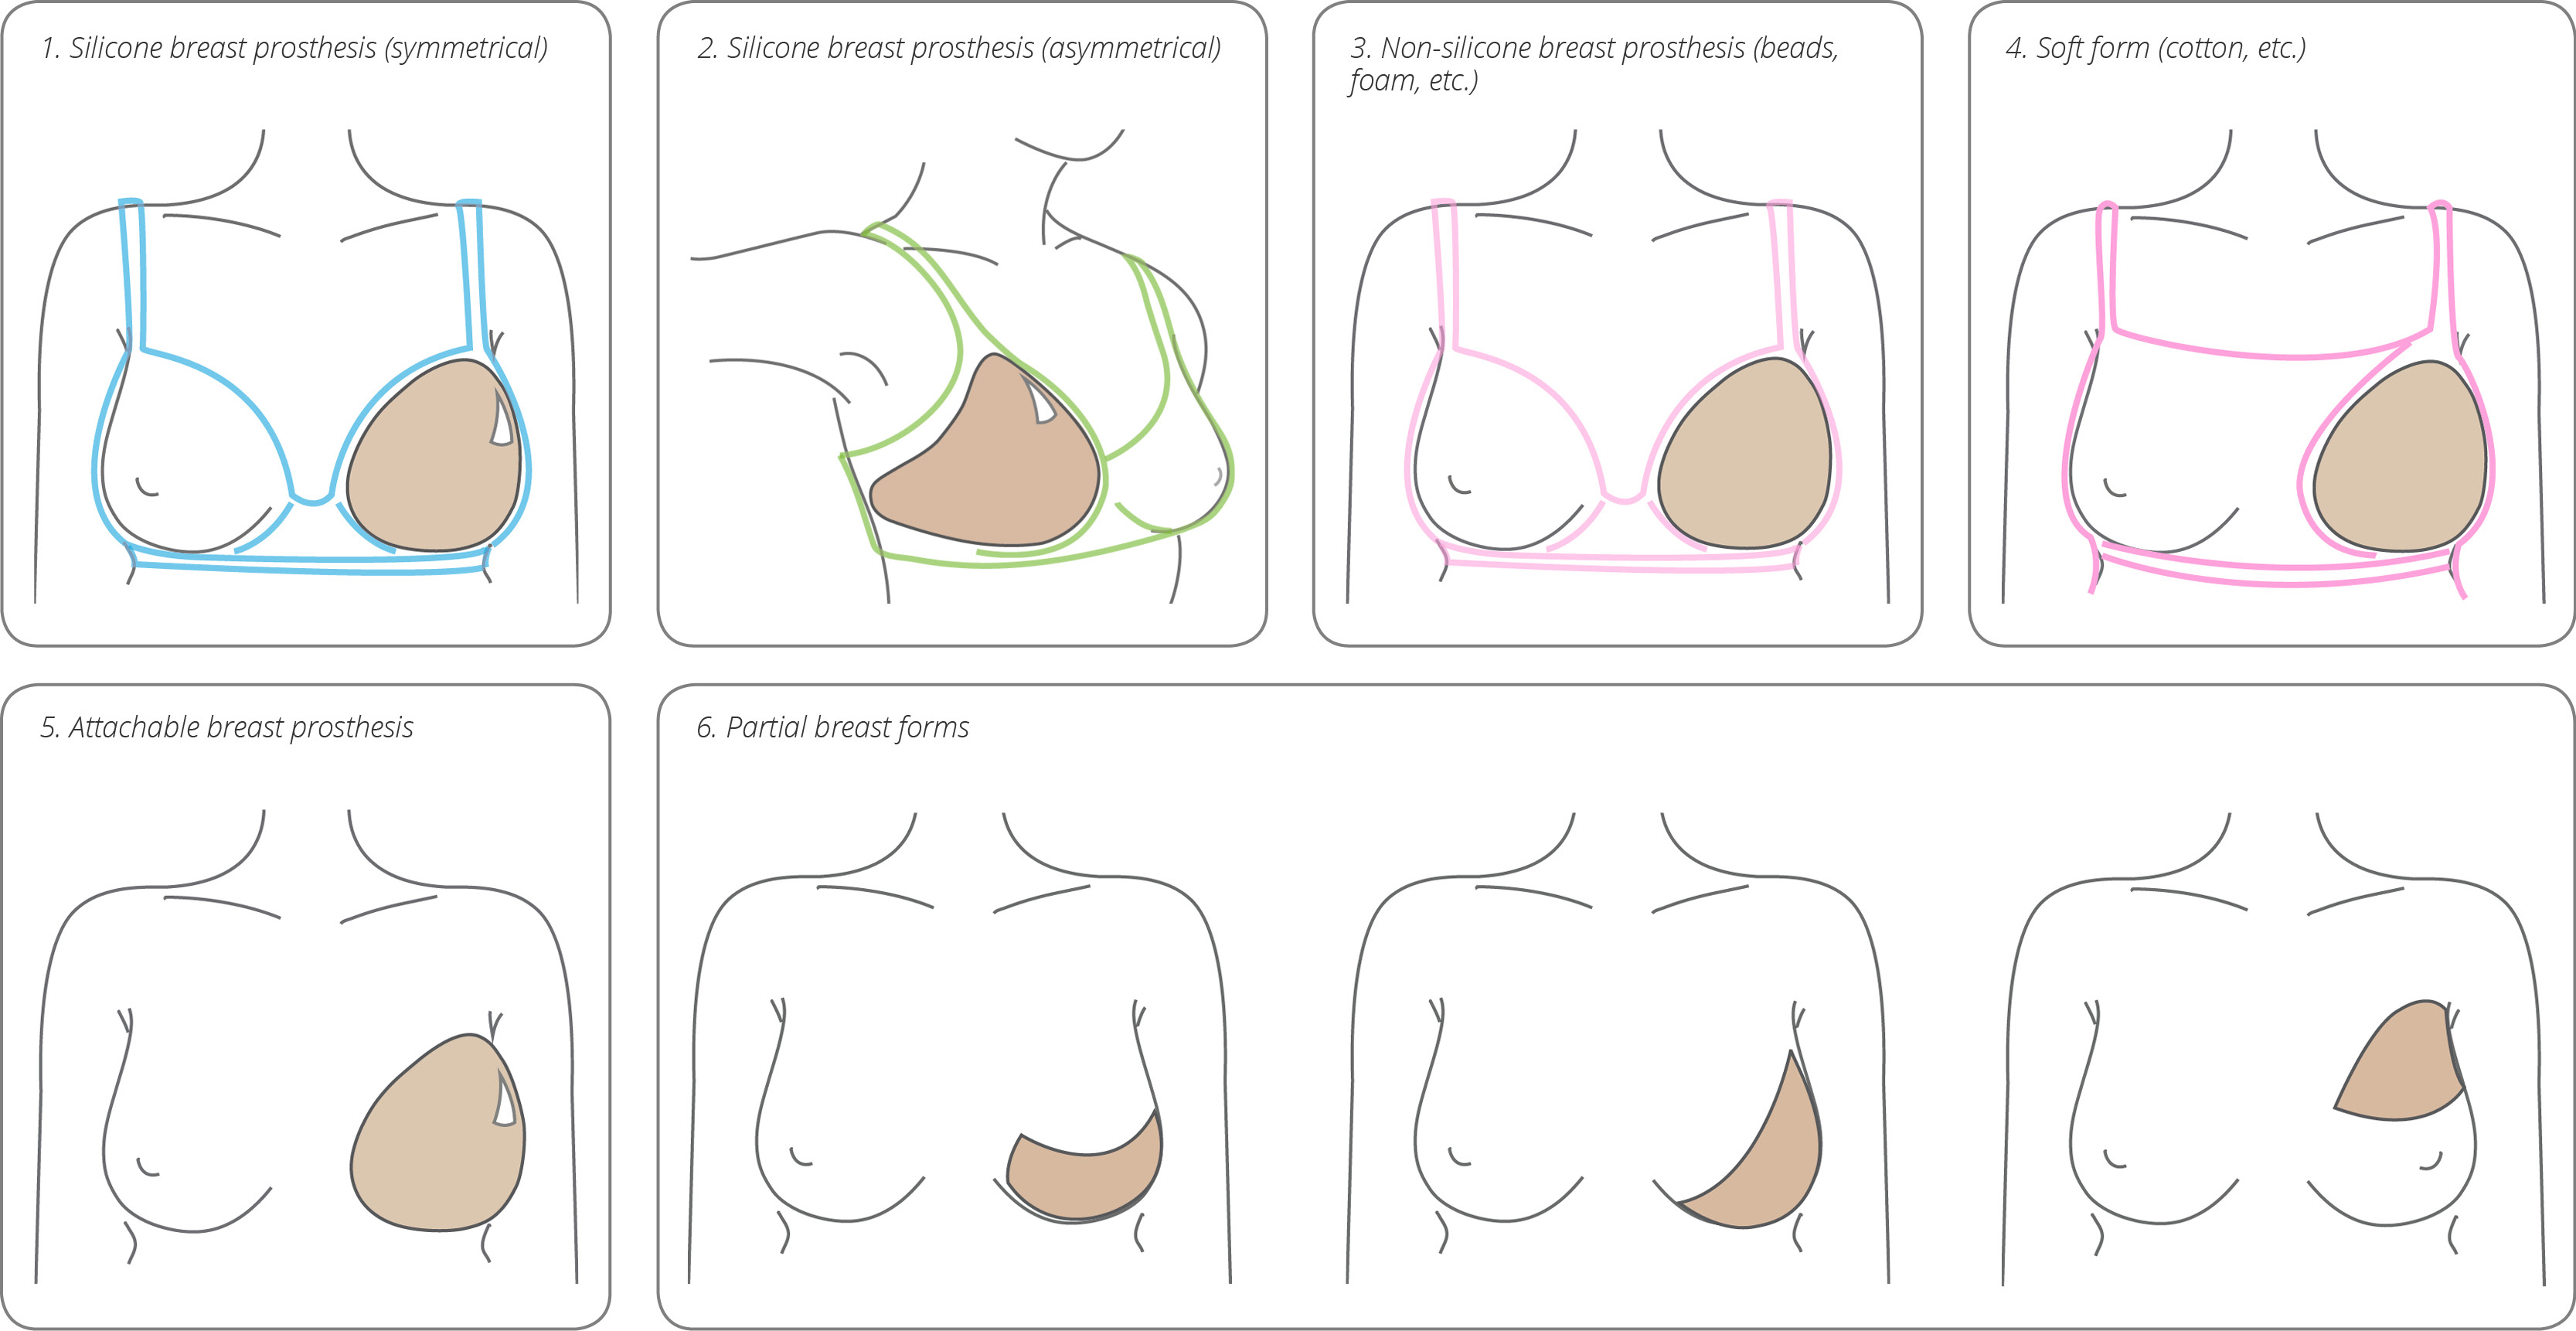 breast prothesis coding Chapter 33: complications of surgery and displaced lens implant admitted for adjustment of breast prosthesis z4430 4.